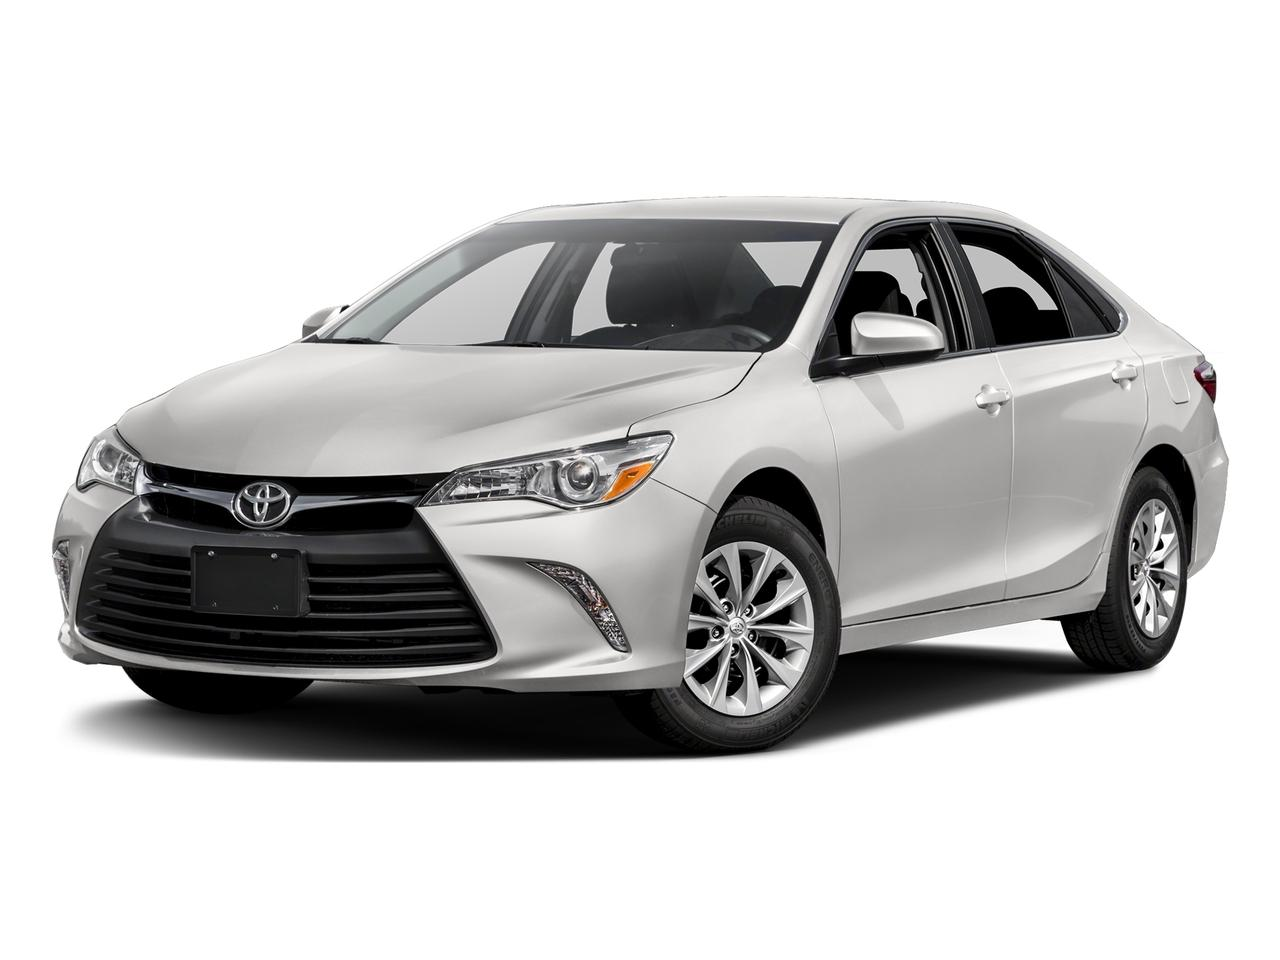 2016 Toyota Camry Vehicle Photo in Denver, CO 80123